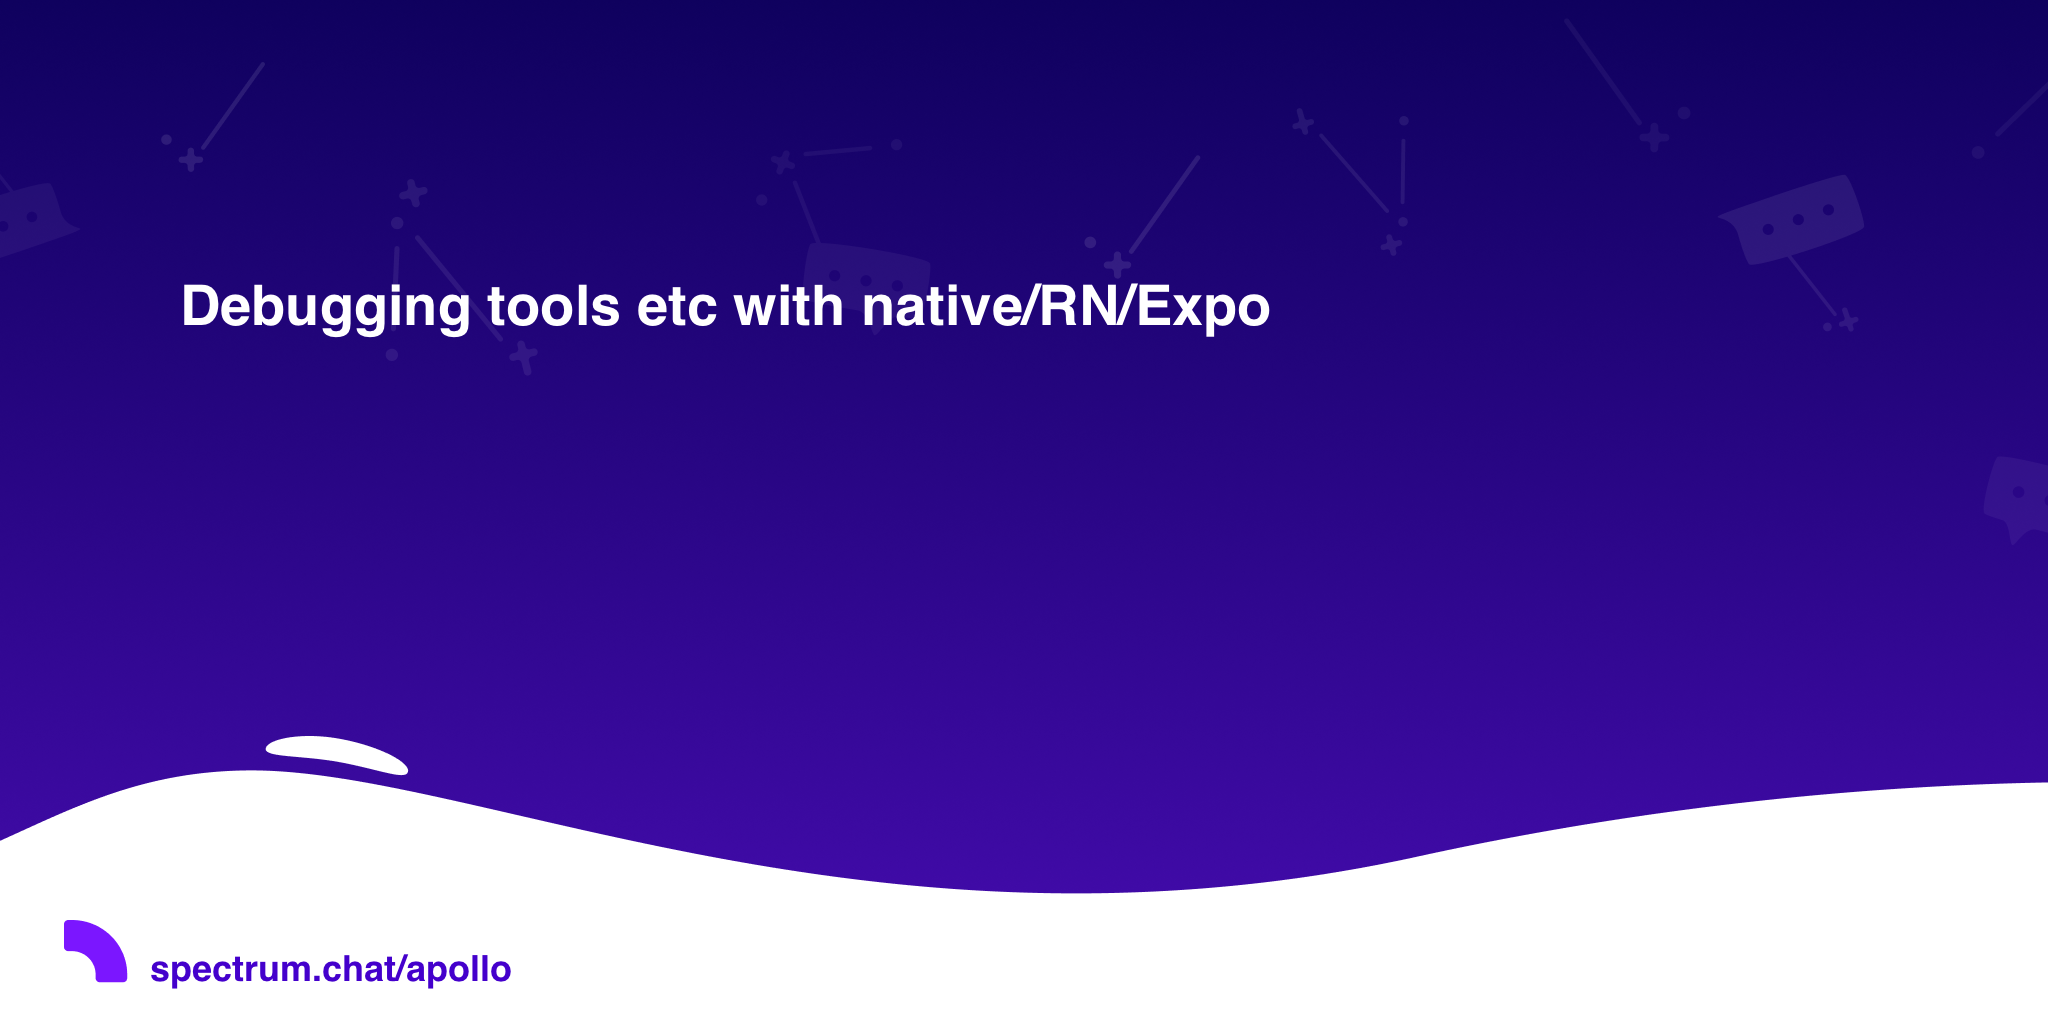 REACT NATIVE DEBUGGER EXPO - 5 things you didn't know about